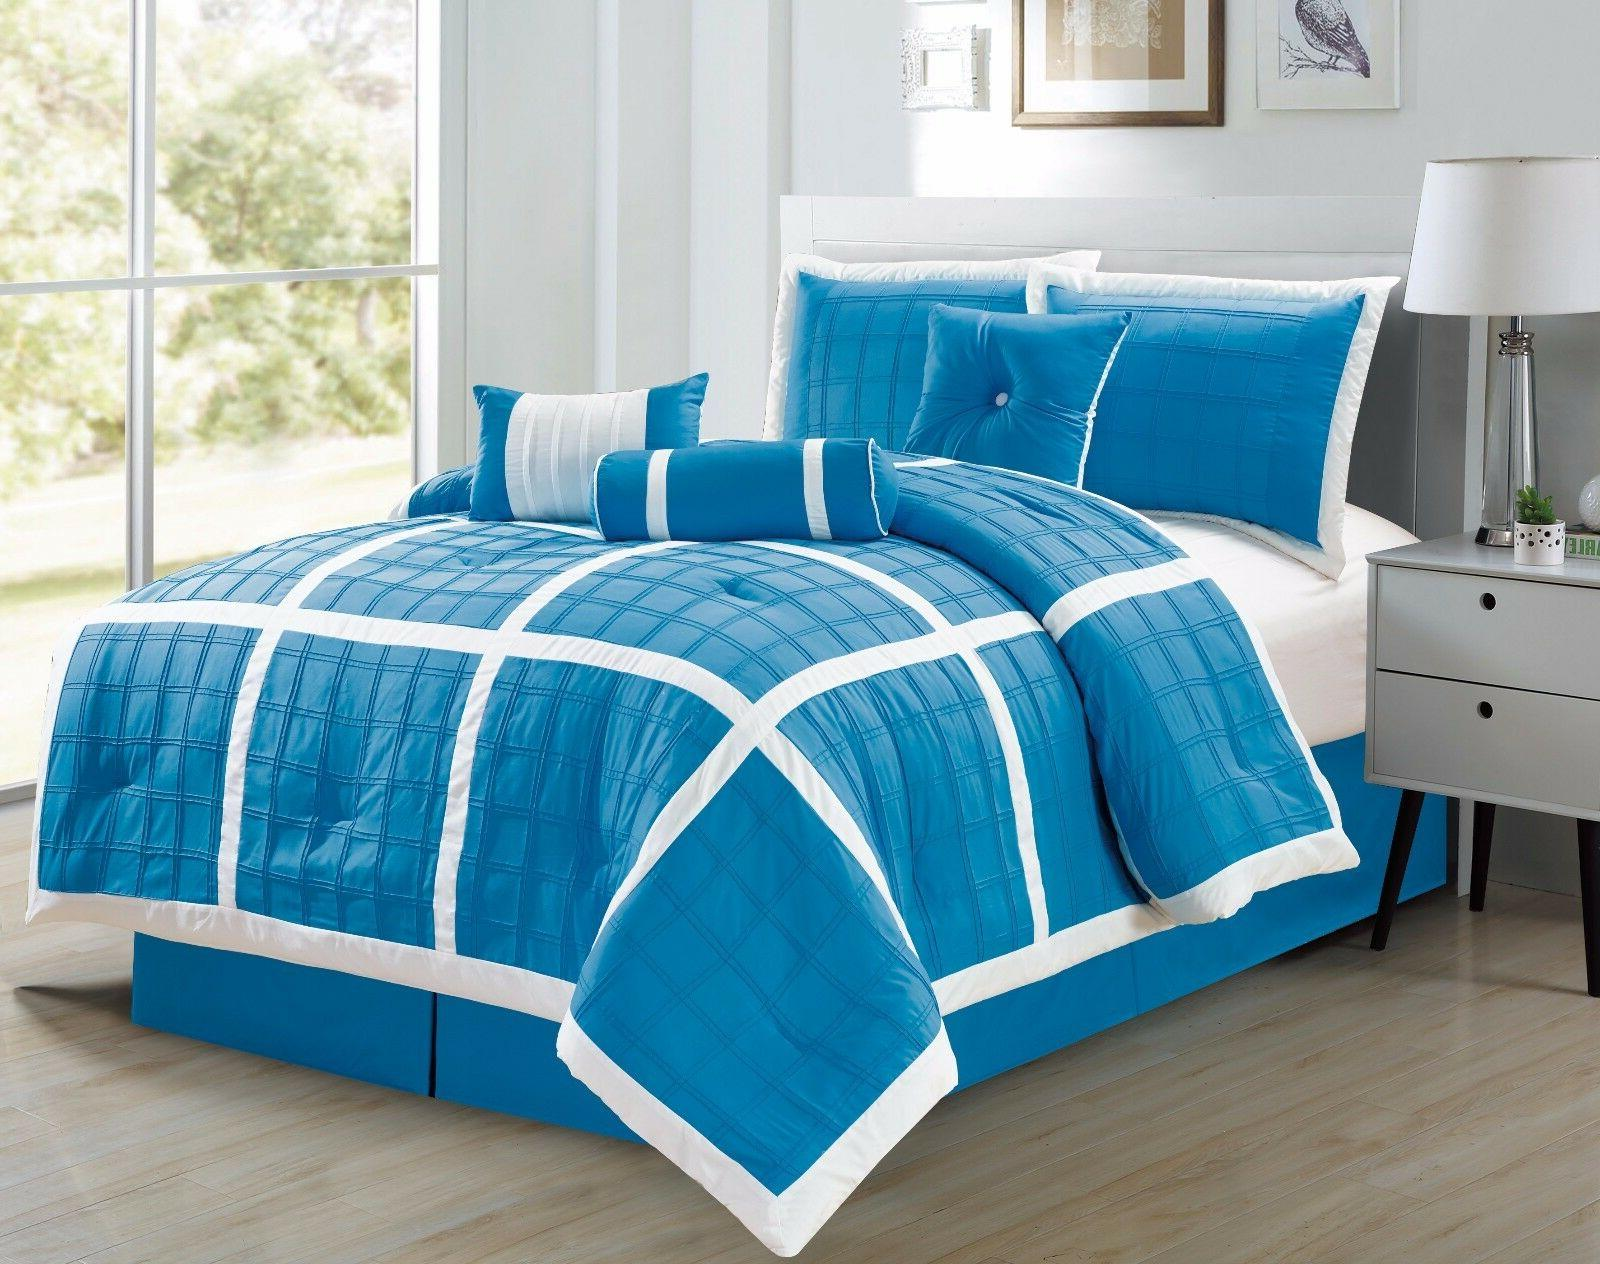 7pc microfiber aqua and white checkered stitched